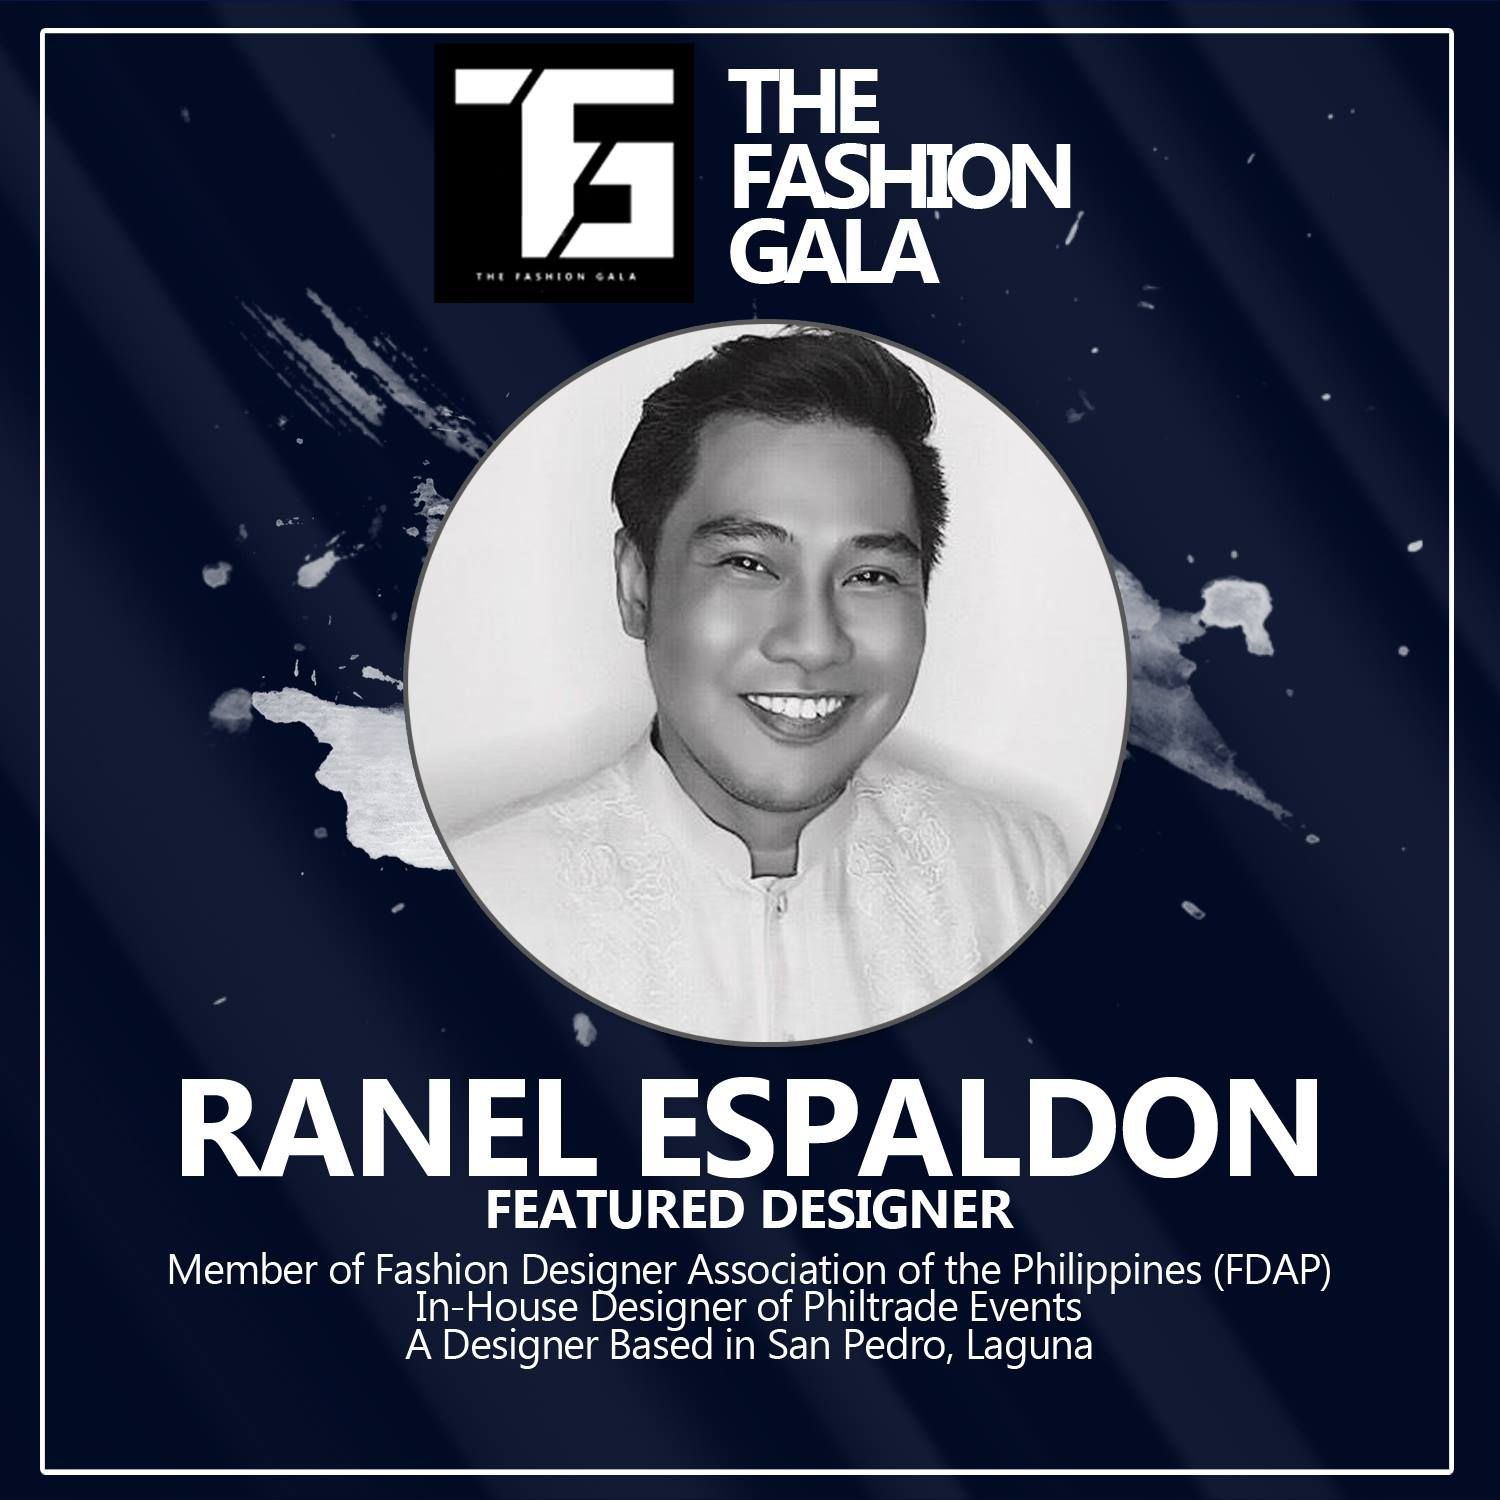 MTP Production Like This Page · June 6 · Our 2nd featured fashion designer is Ranel Espaldon, he is based in San Pedro, Laguna a proud member of Fashion Designer Association of the Philippines (FDAP) and In-House fashion designer of Philtrade Events. Watch our show on June 25, 2017 entitled THE FASHION GALA WEDDINGS (5PM) and THE FASHION GALA BEYOND STREET (8PM) at Elements at Centris, EDSA cor. Quezon Ave., Quezon City #TFGweddings #TFGbeyondstreet #RanelEspaldon #MTPproduction — with Dave Ocampo.